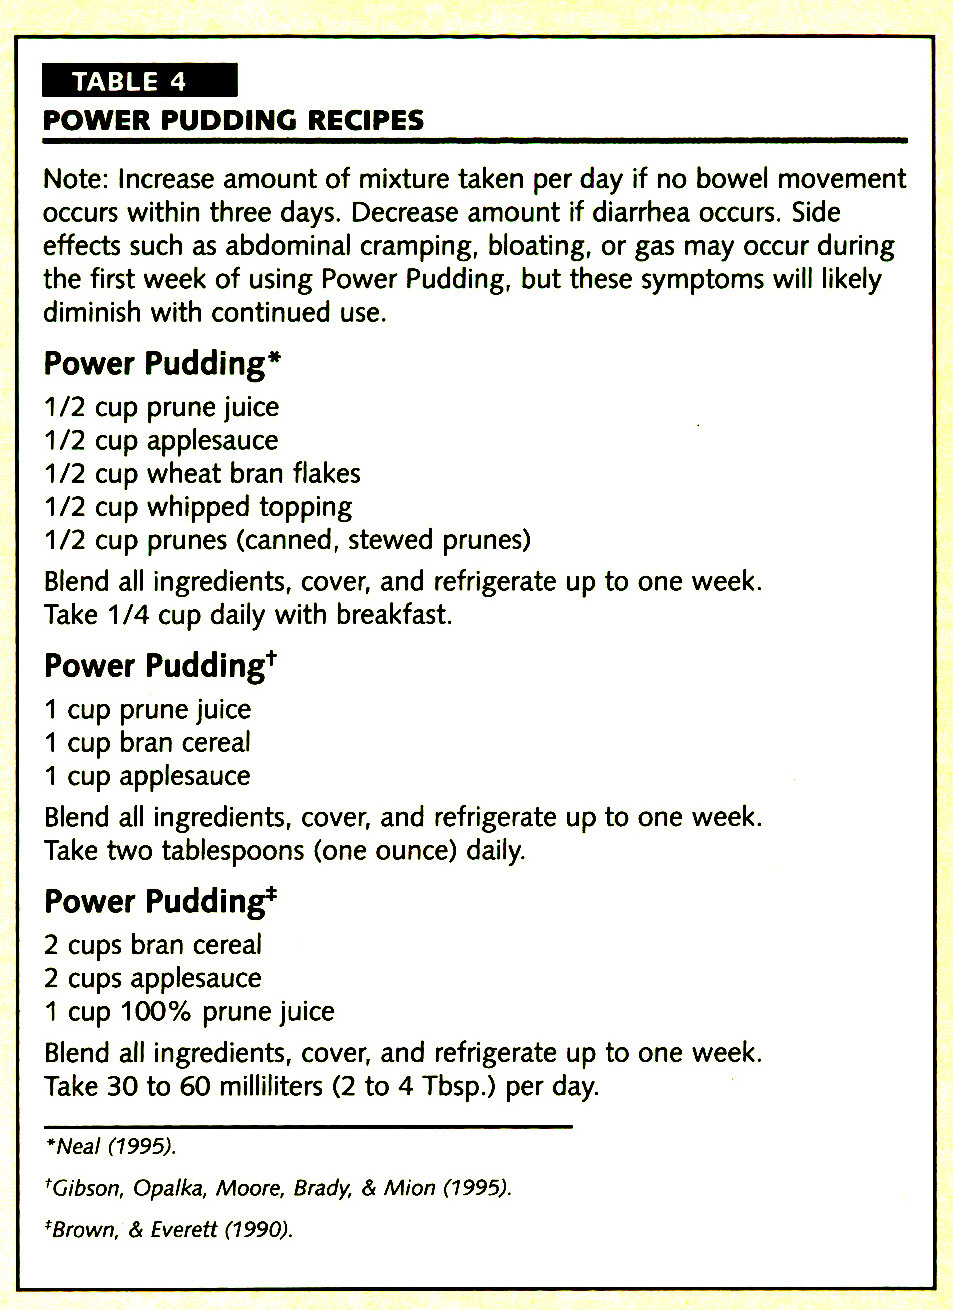 TABLE 4POWER PUDDING RECIPES